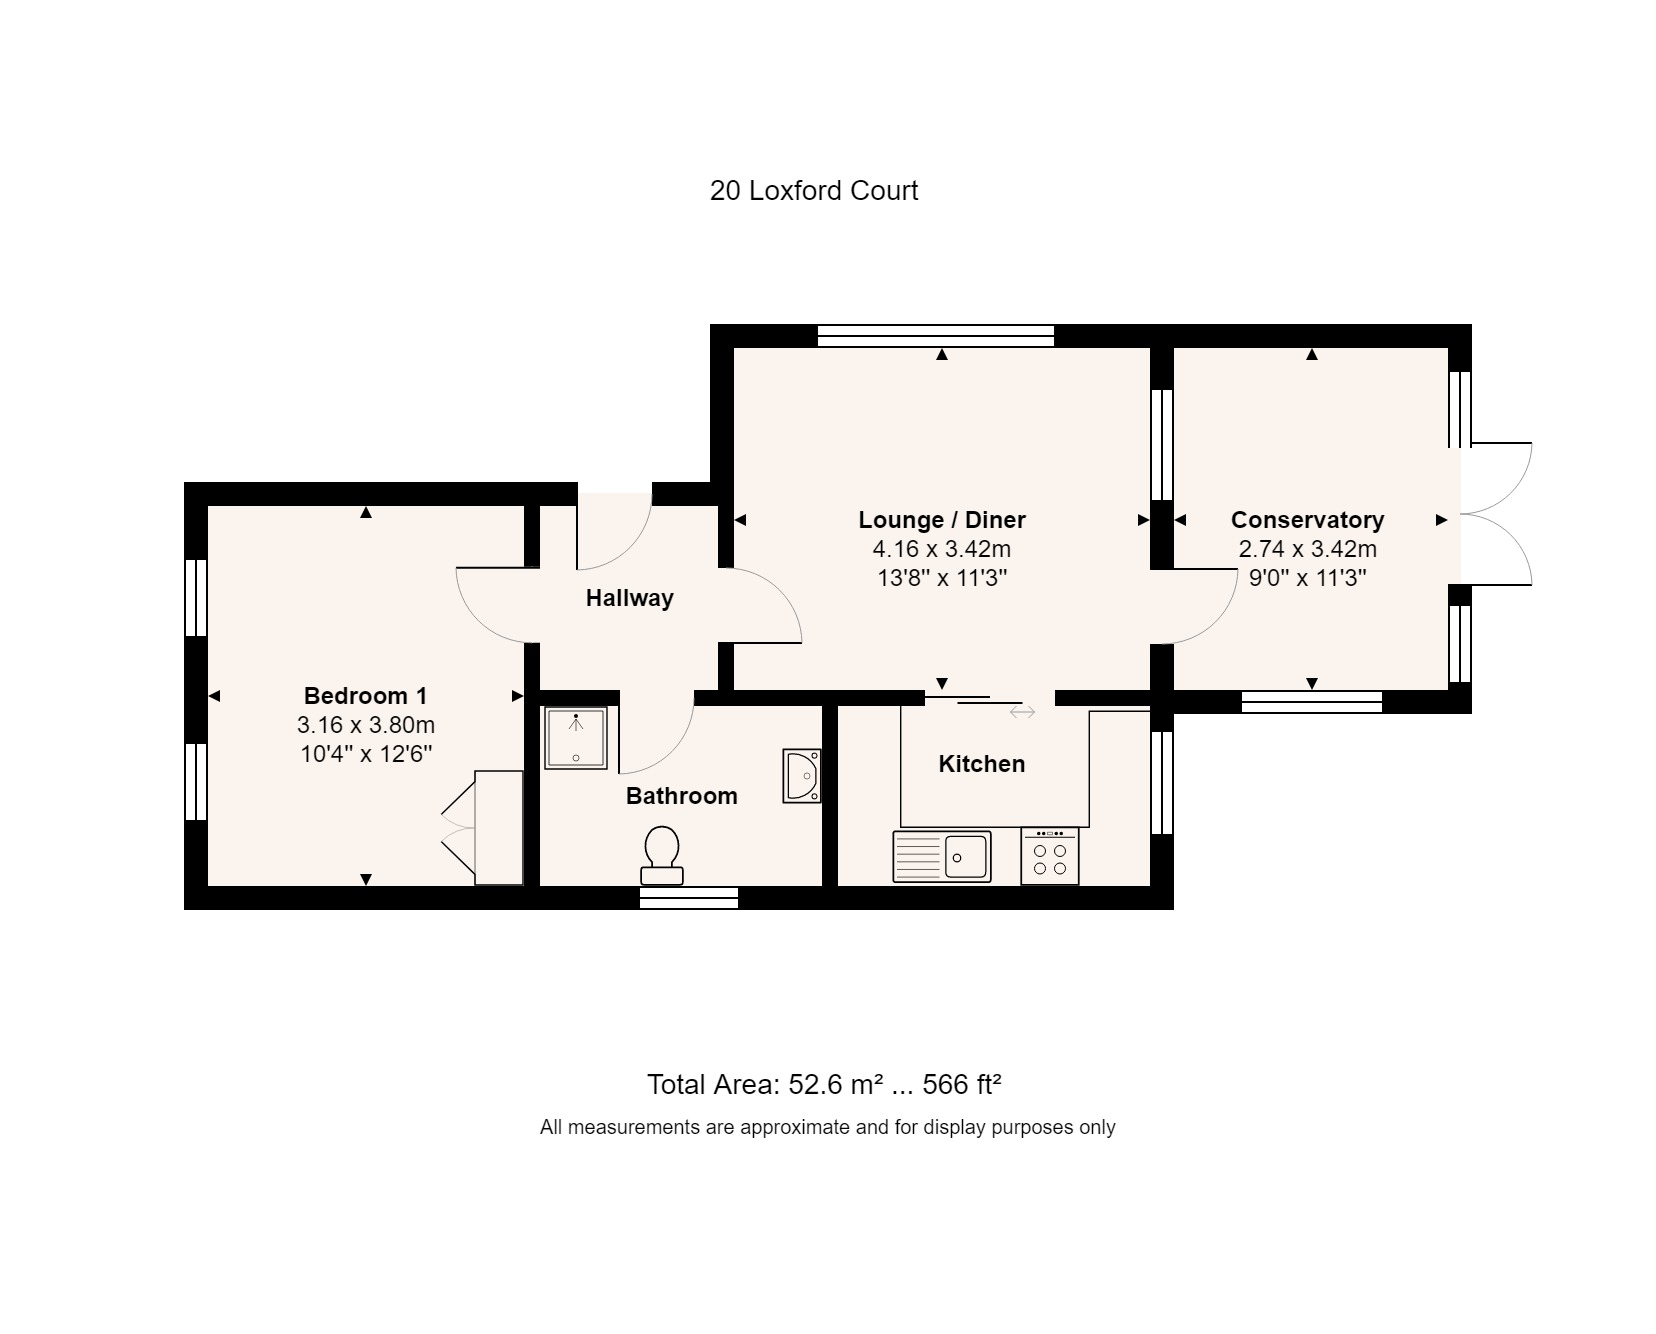 20 Loxford Court Floorplan